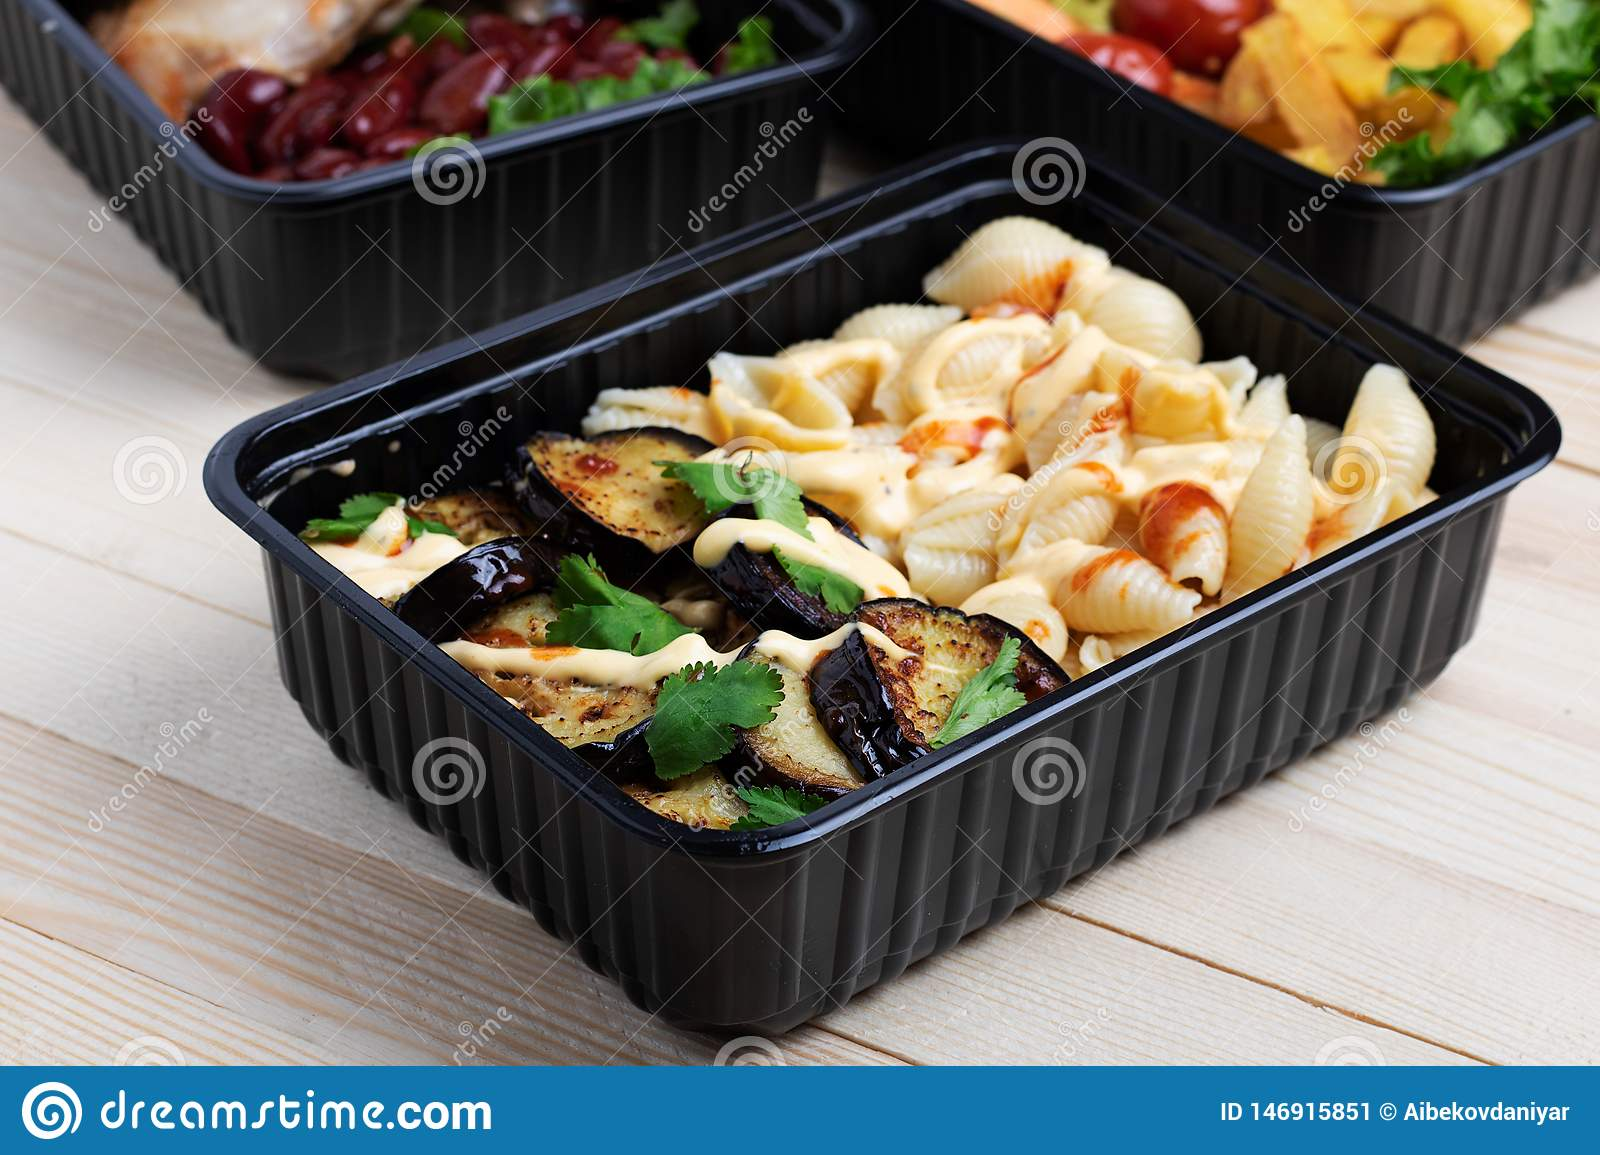 Fried eggplants in container with grilled chicken wings and raw vegetables on rustic background, cherry tomato and micro greenss